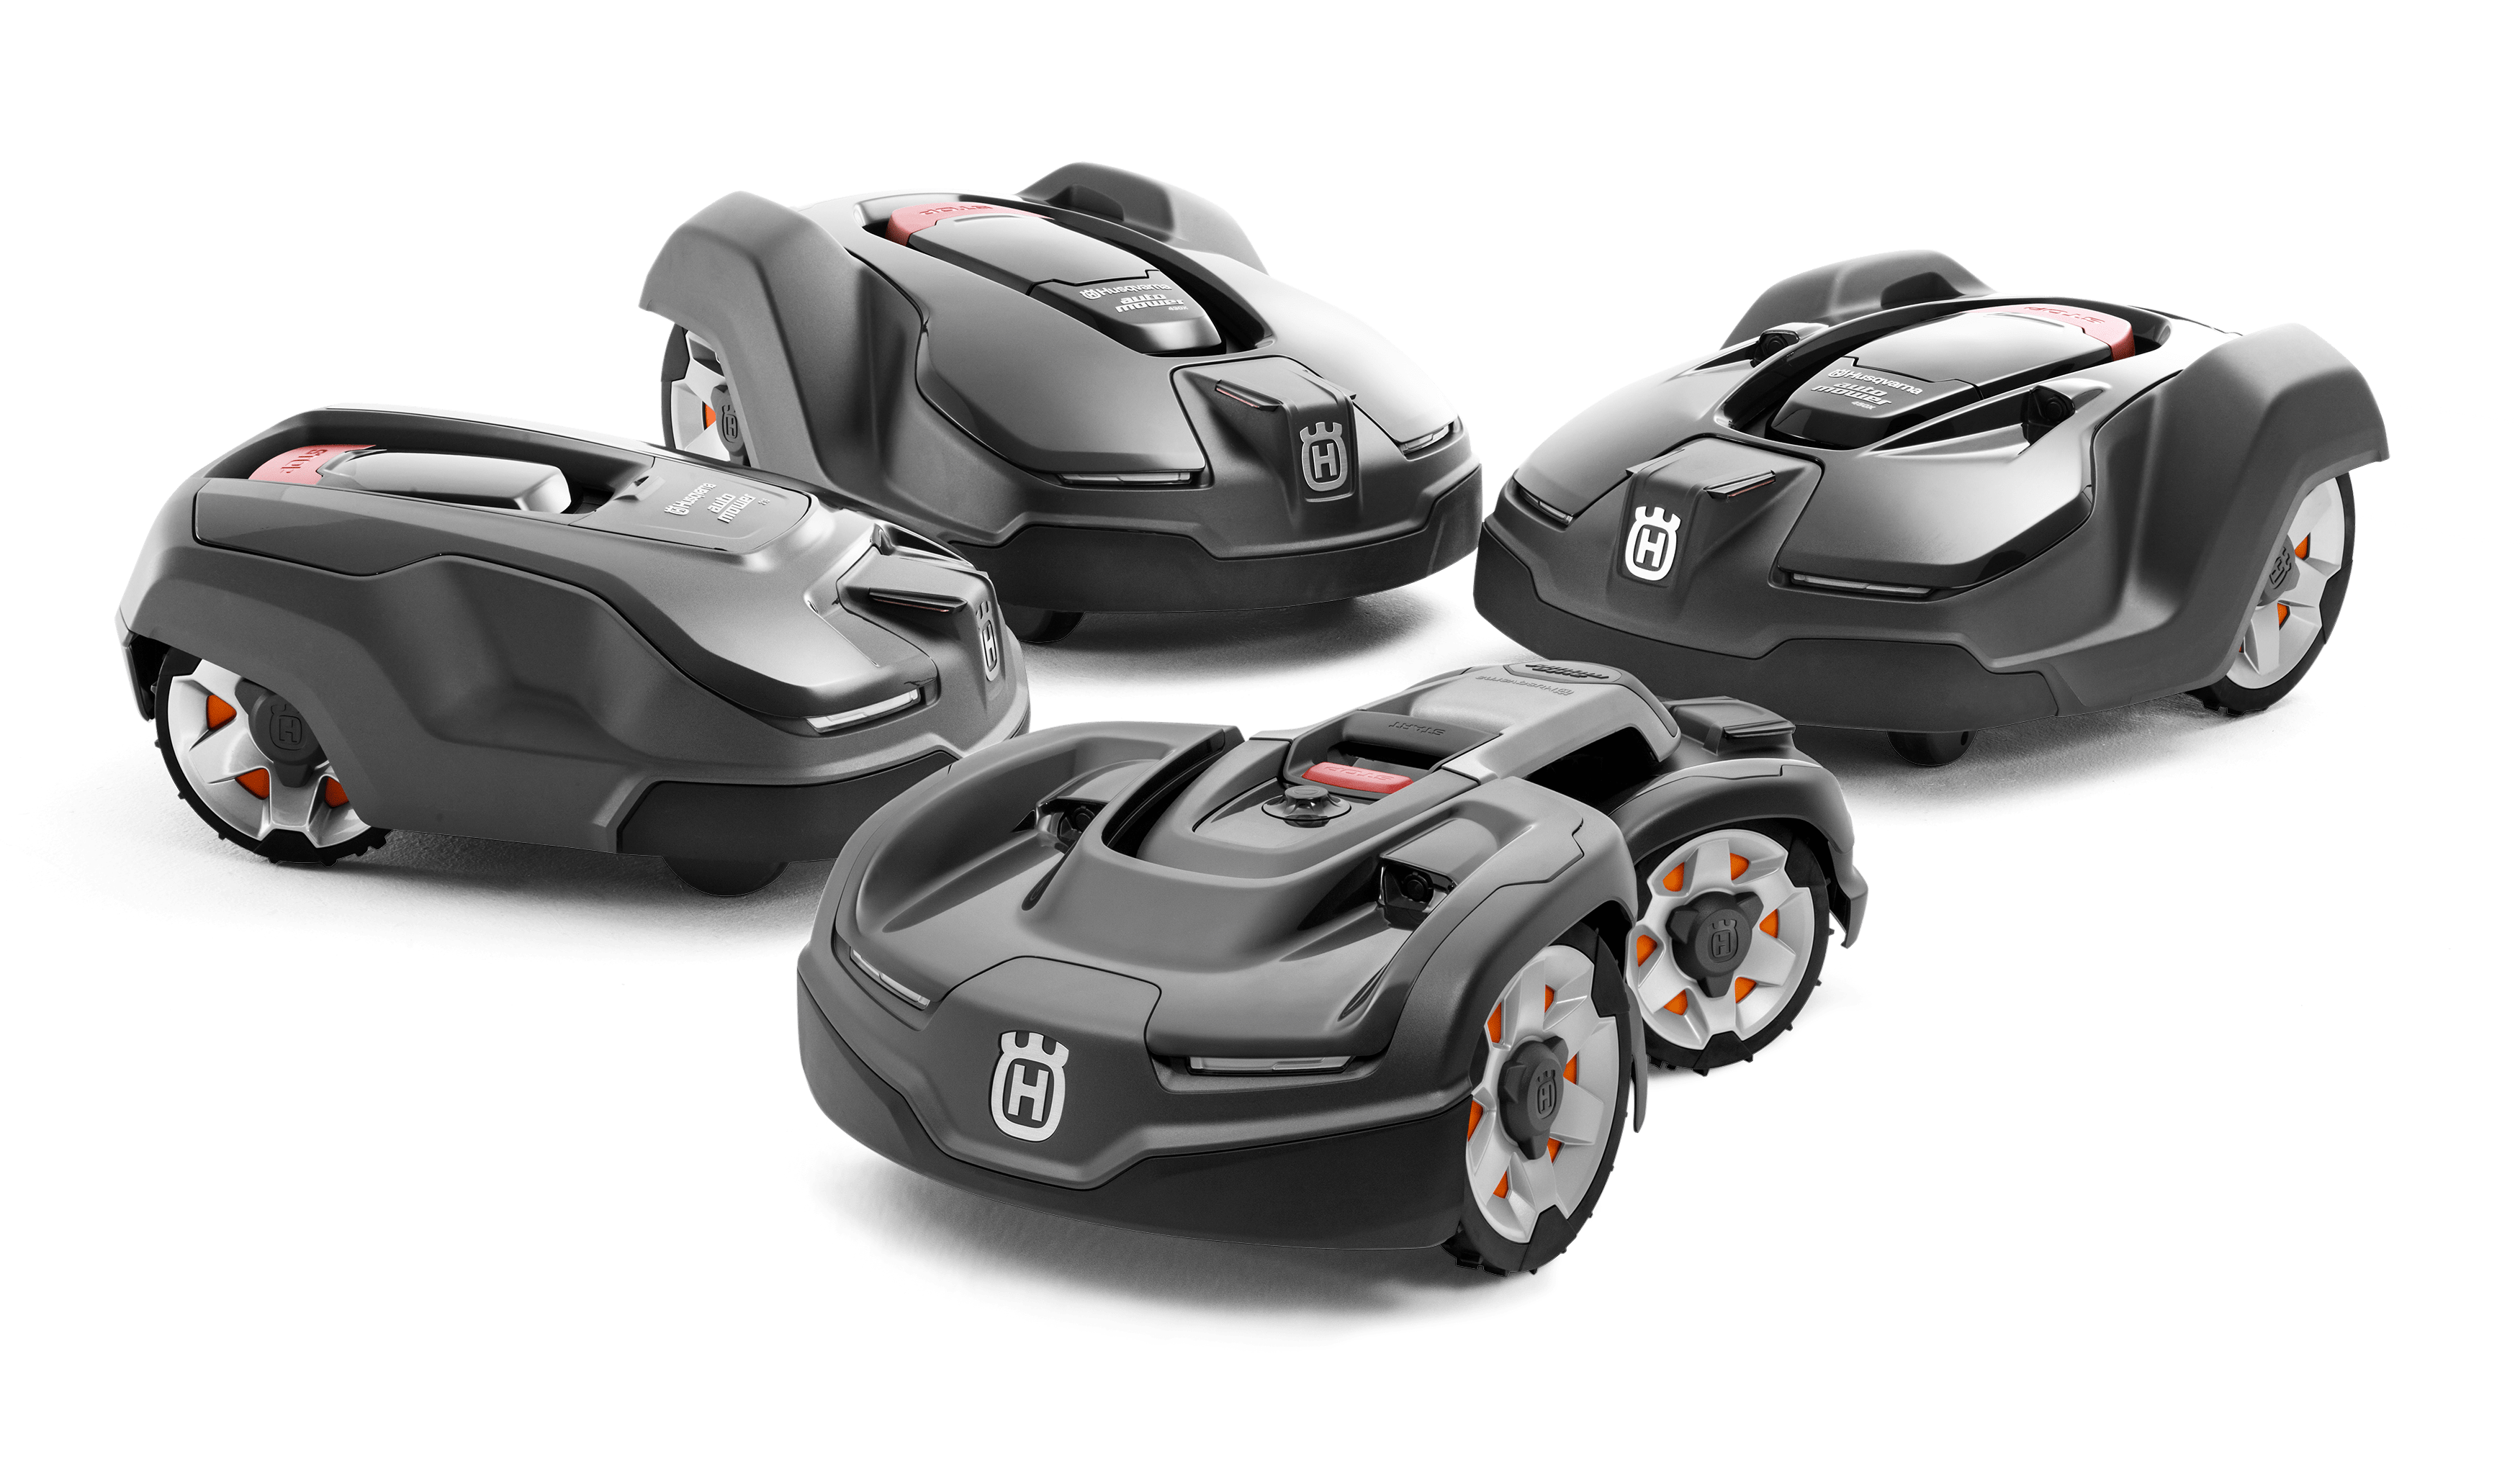 Which automower is right for you?